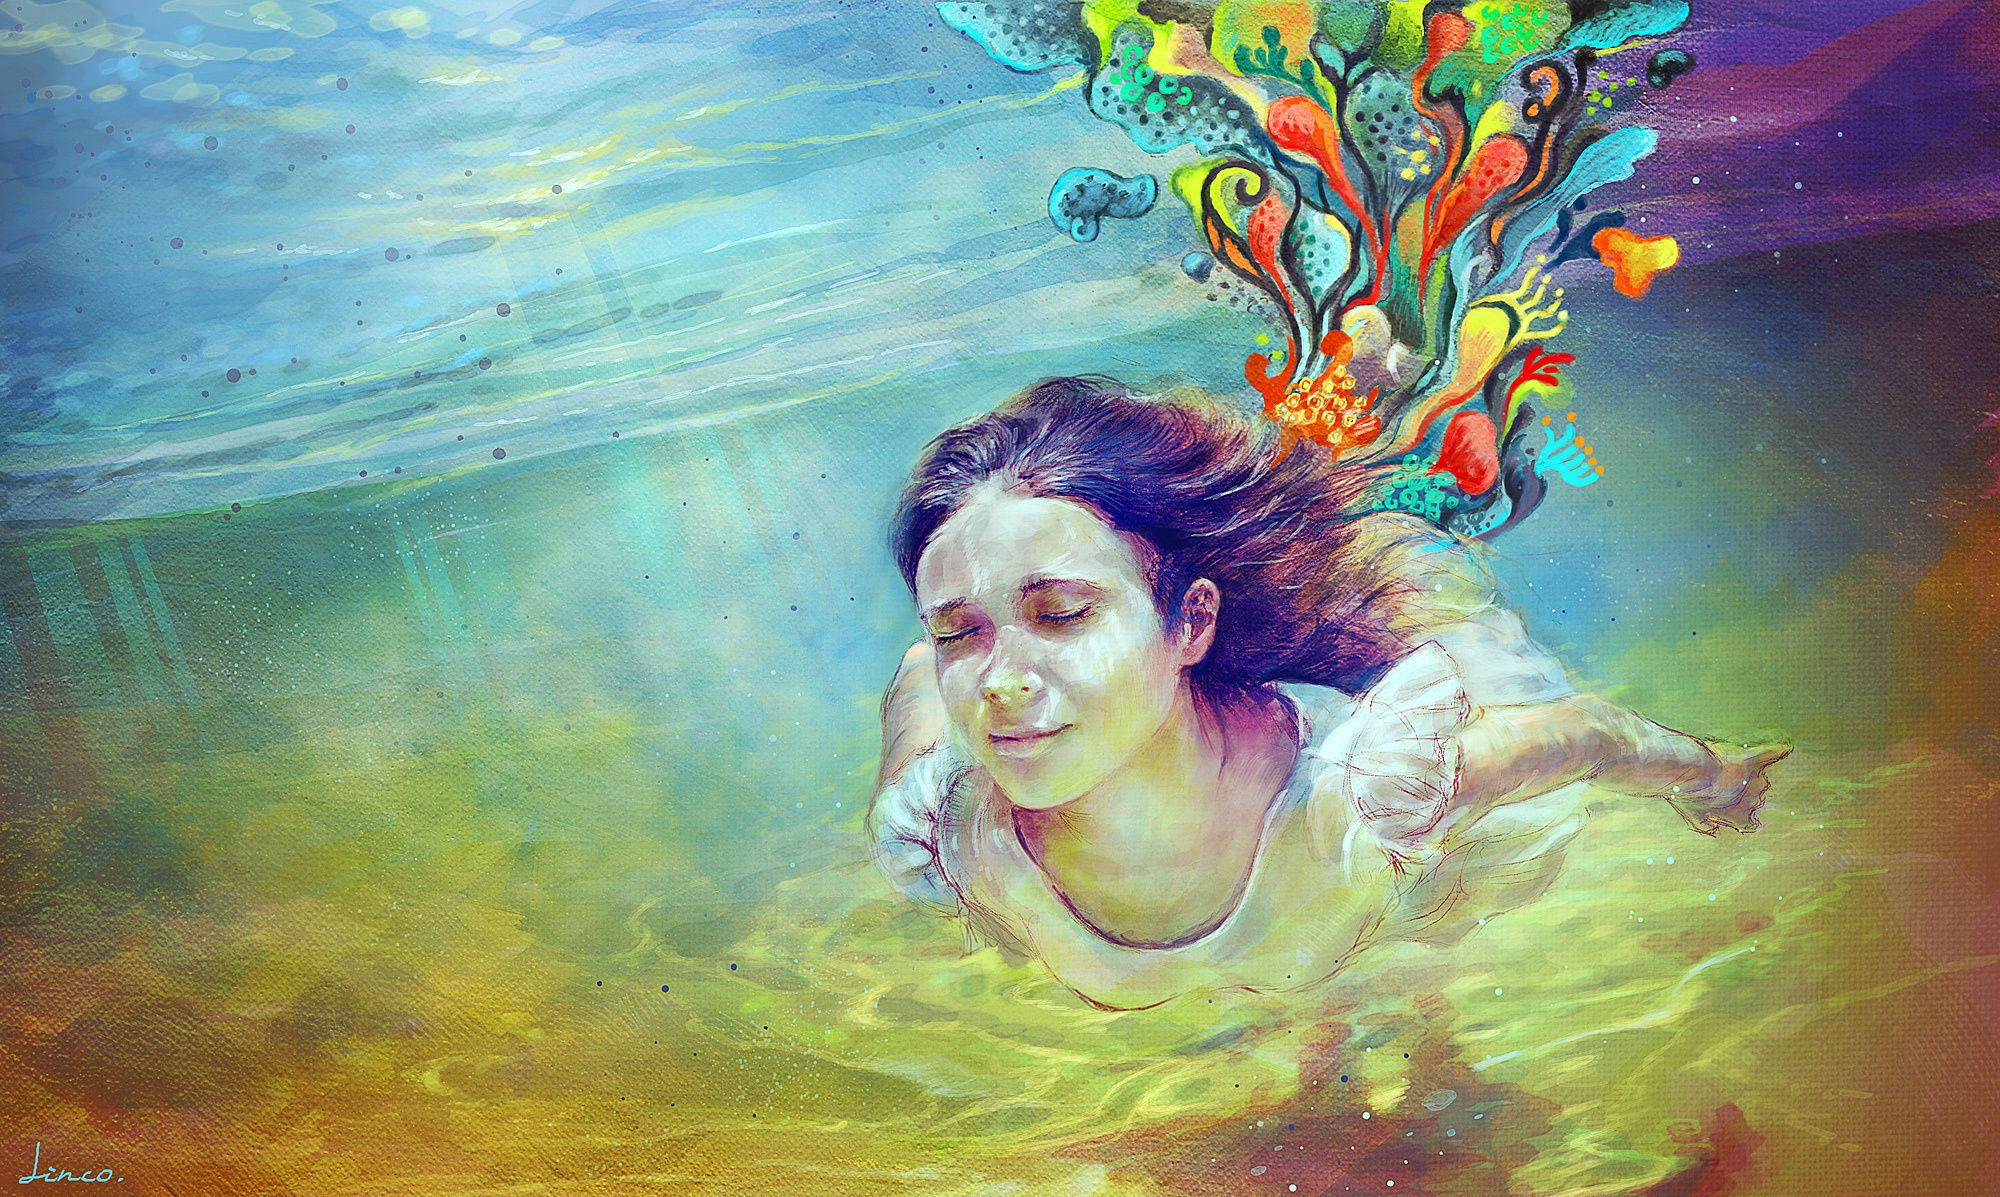 Trippy Woman Wallpapers Top Free Trippy Woman Backgrounds